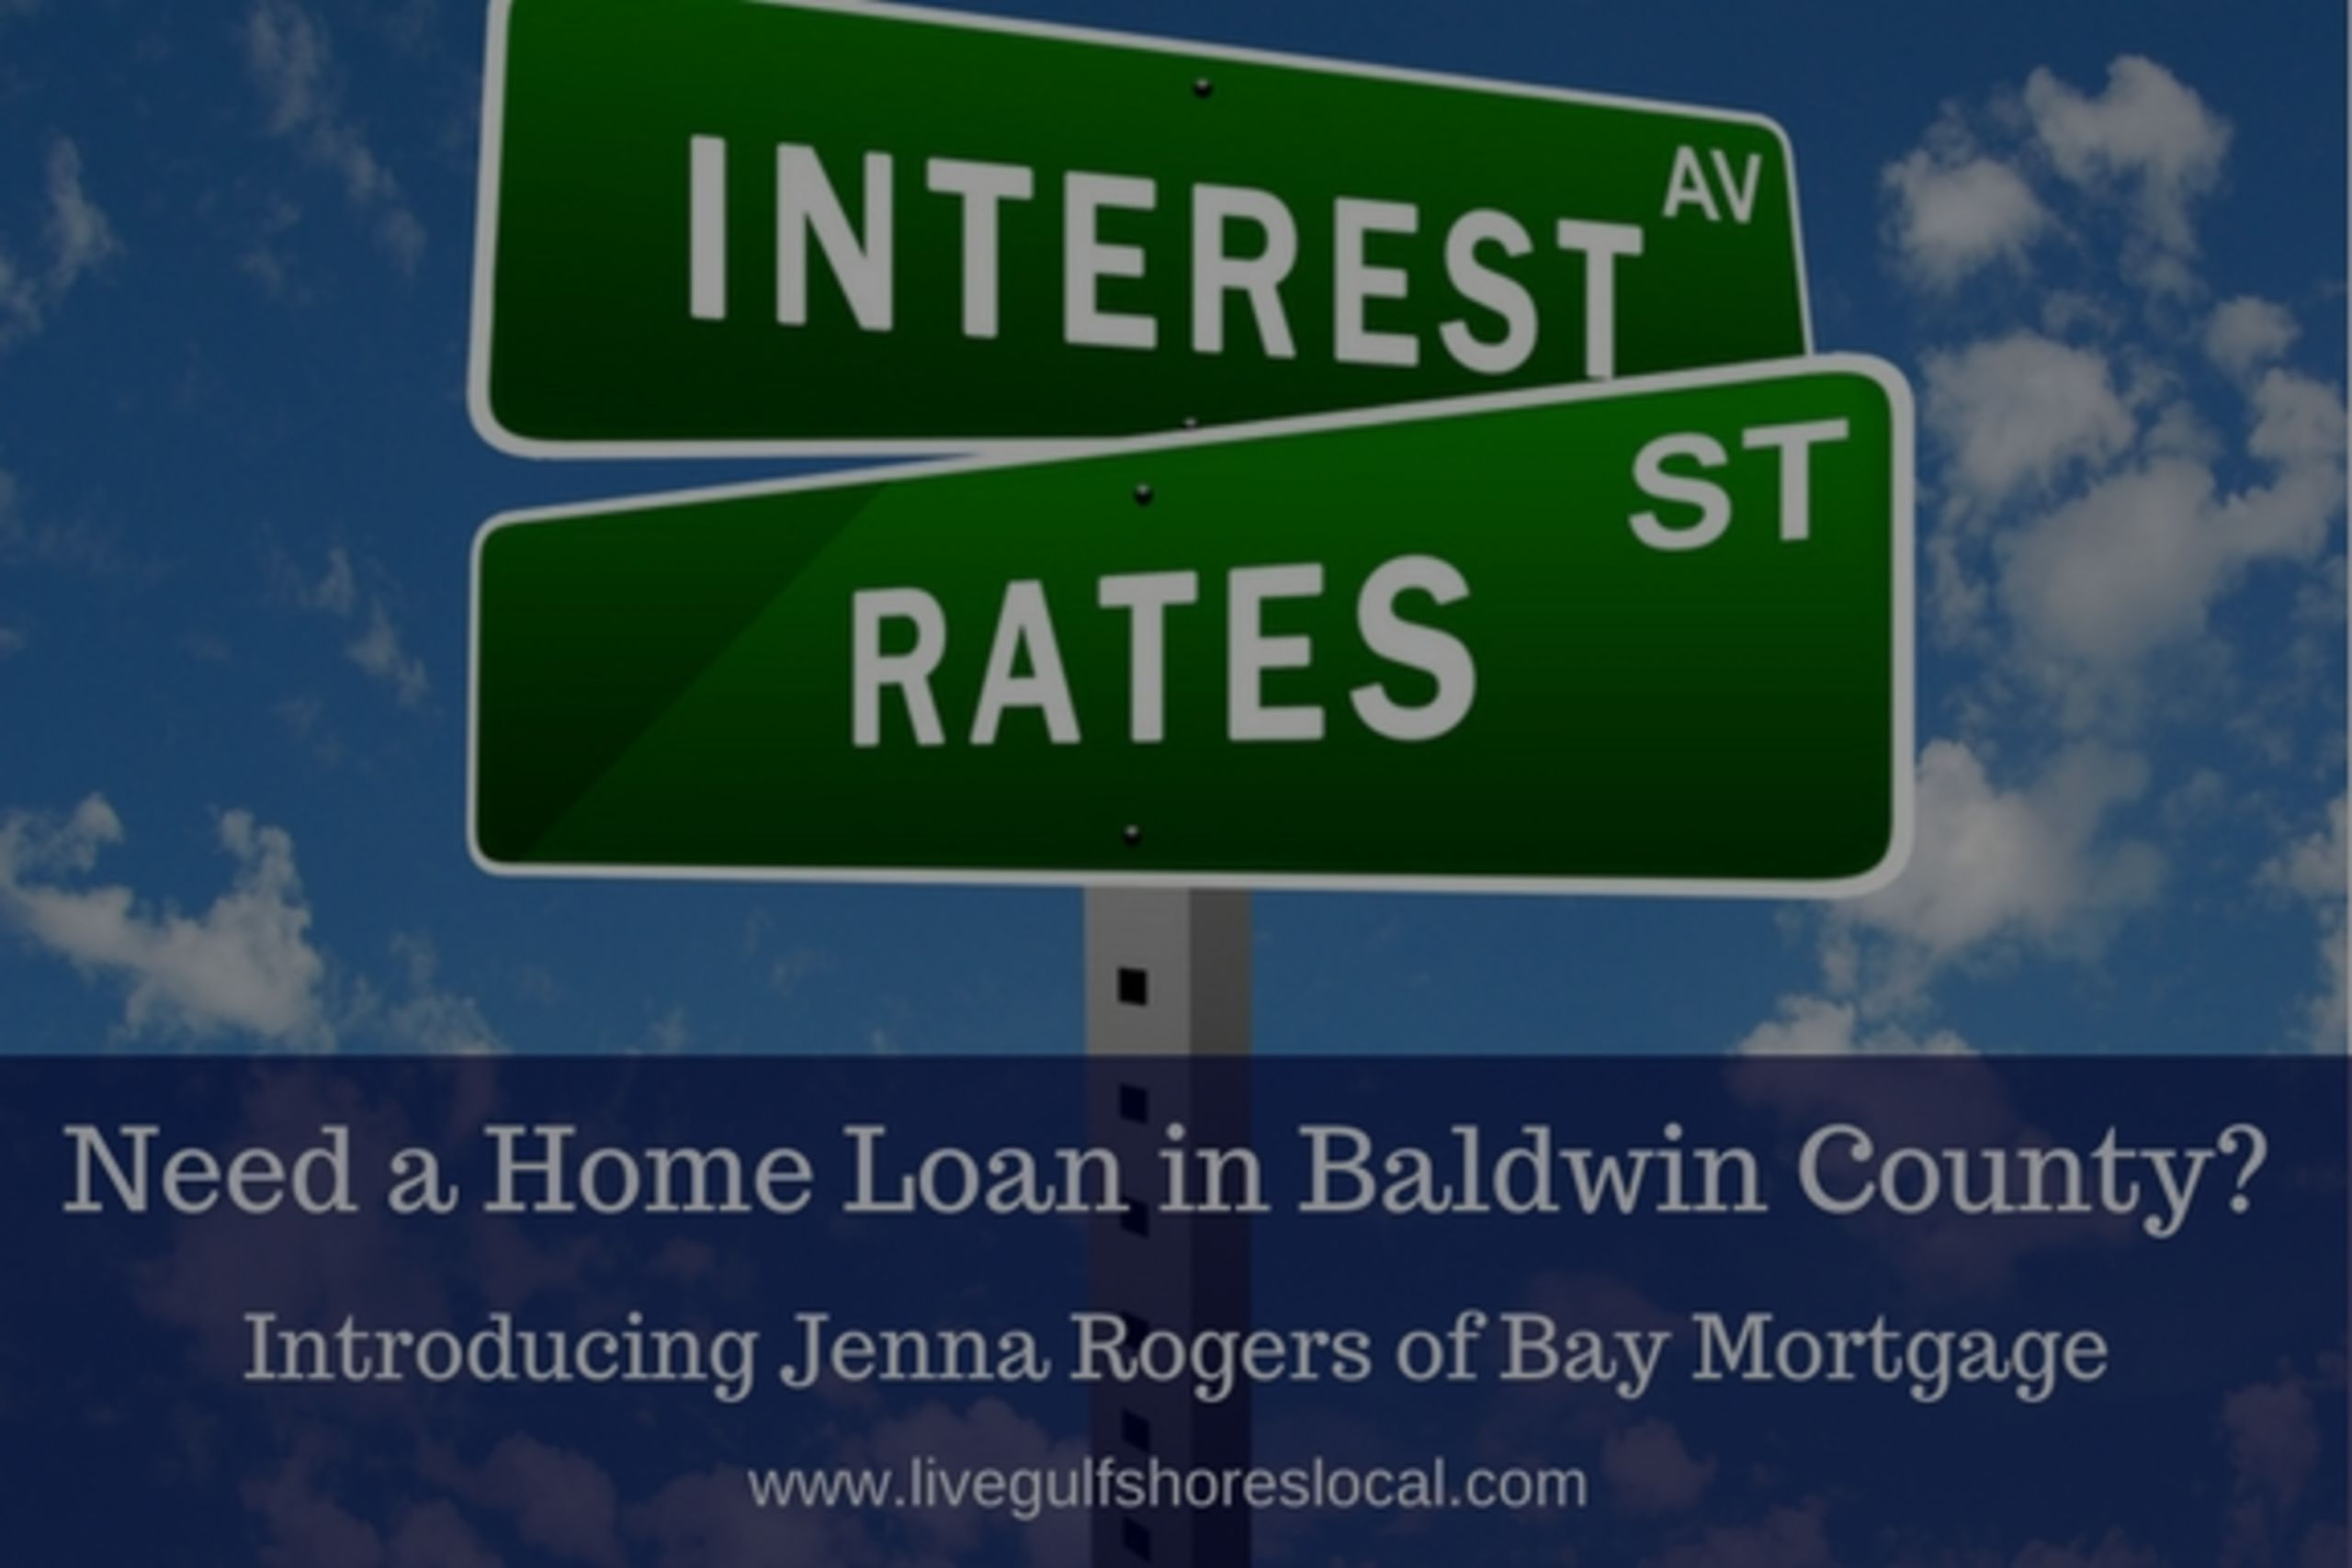 Introducing Jenna Rogers of Bay Mortgage in Fairhope AL.